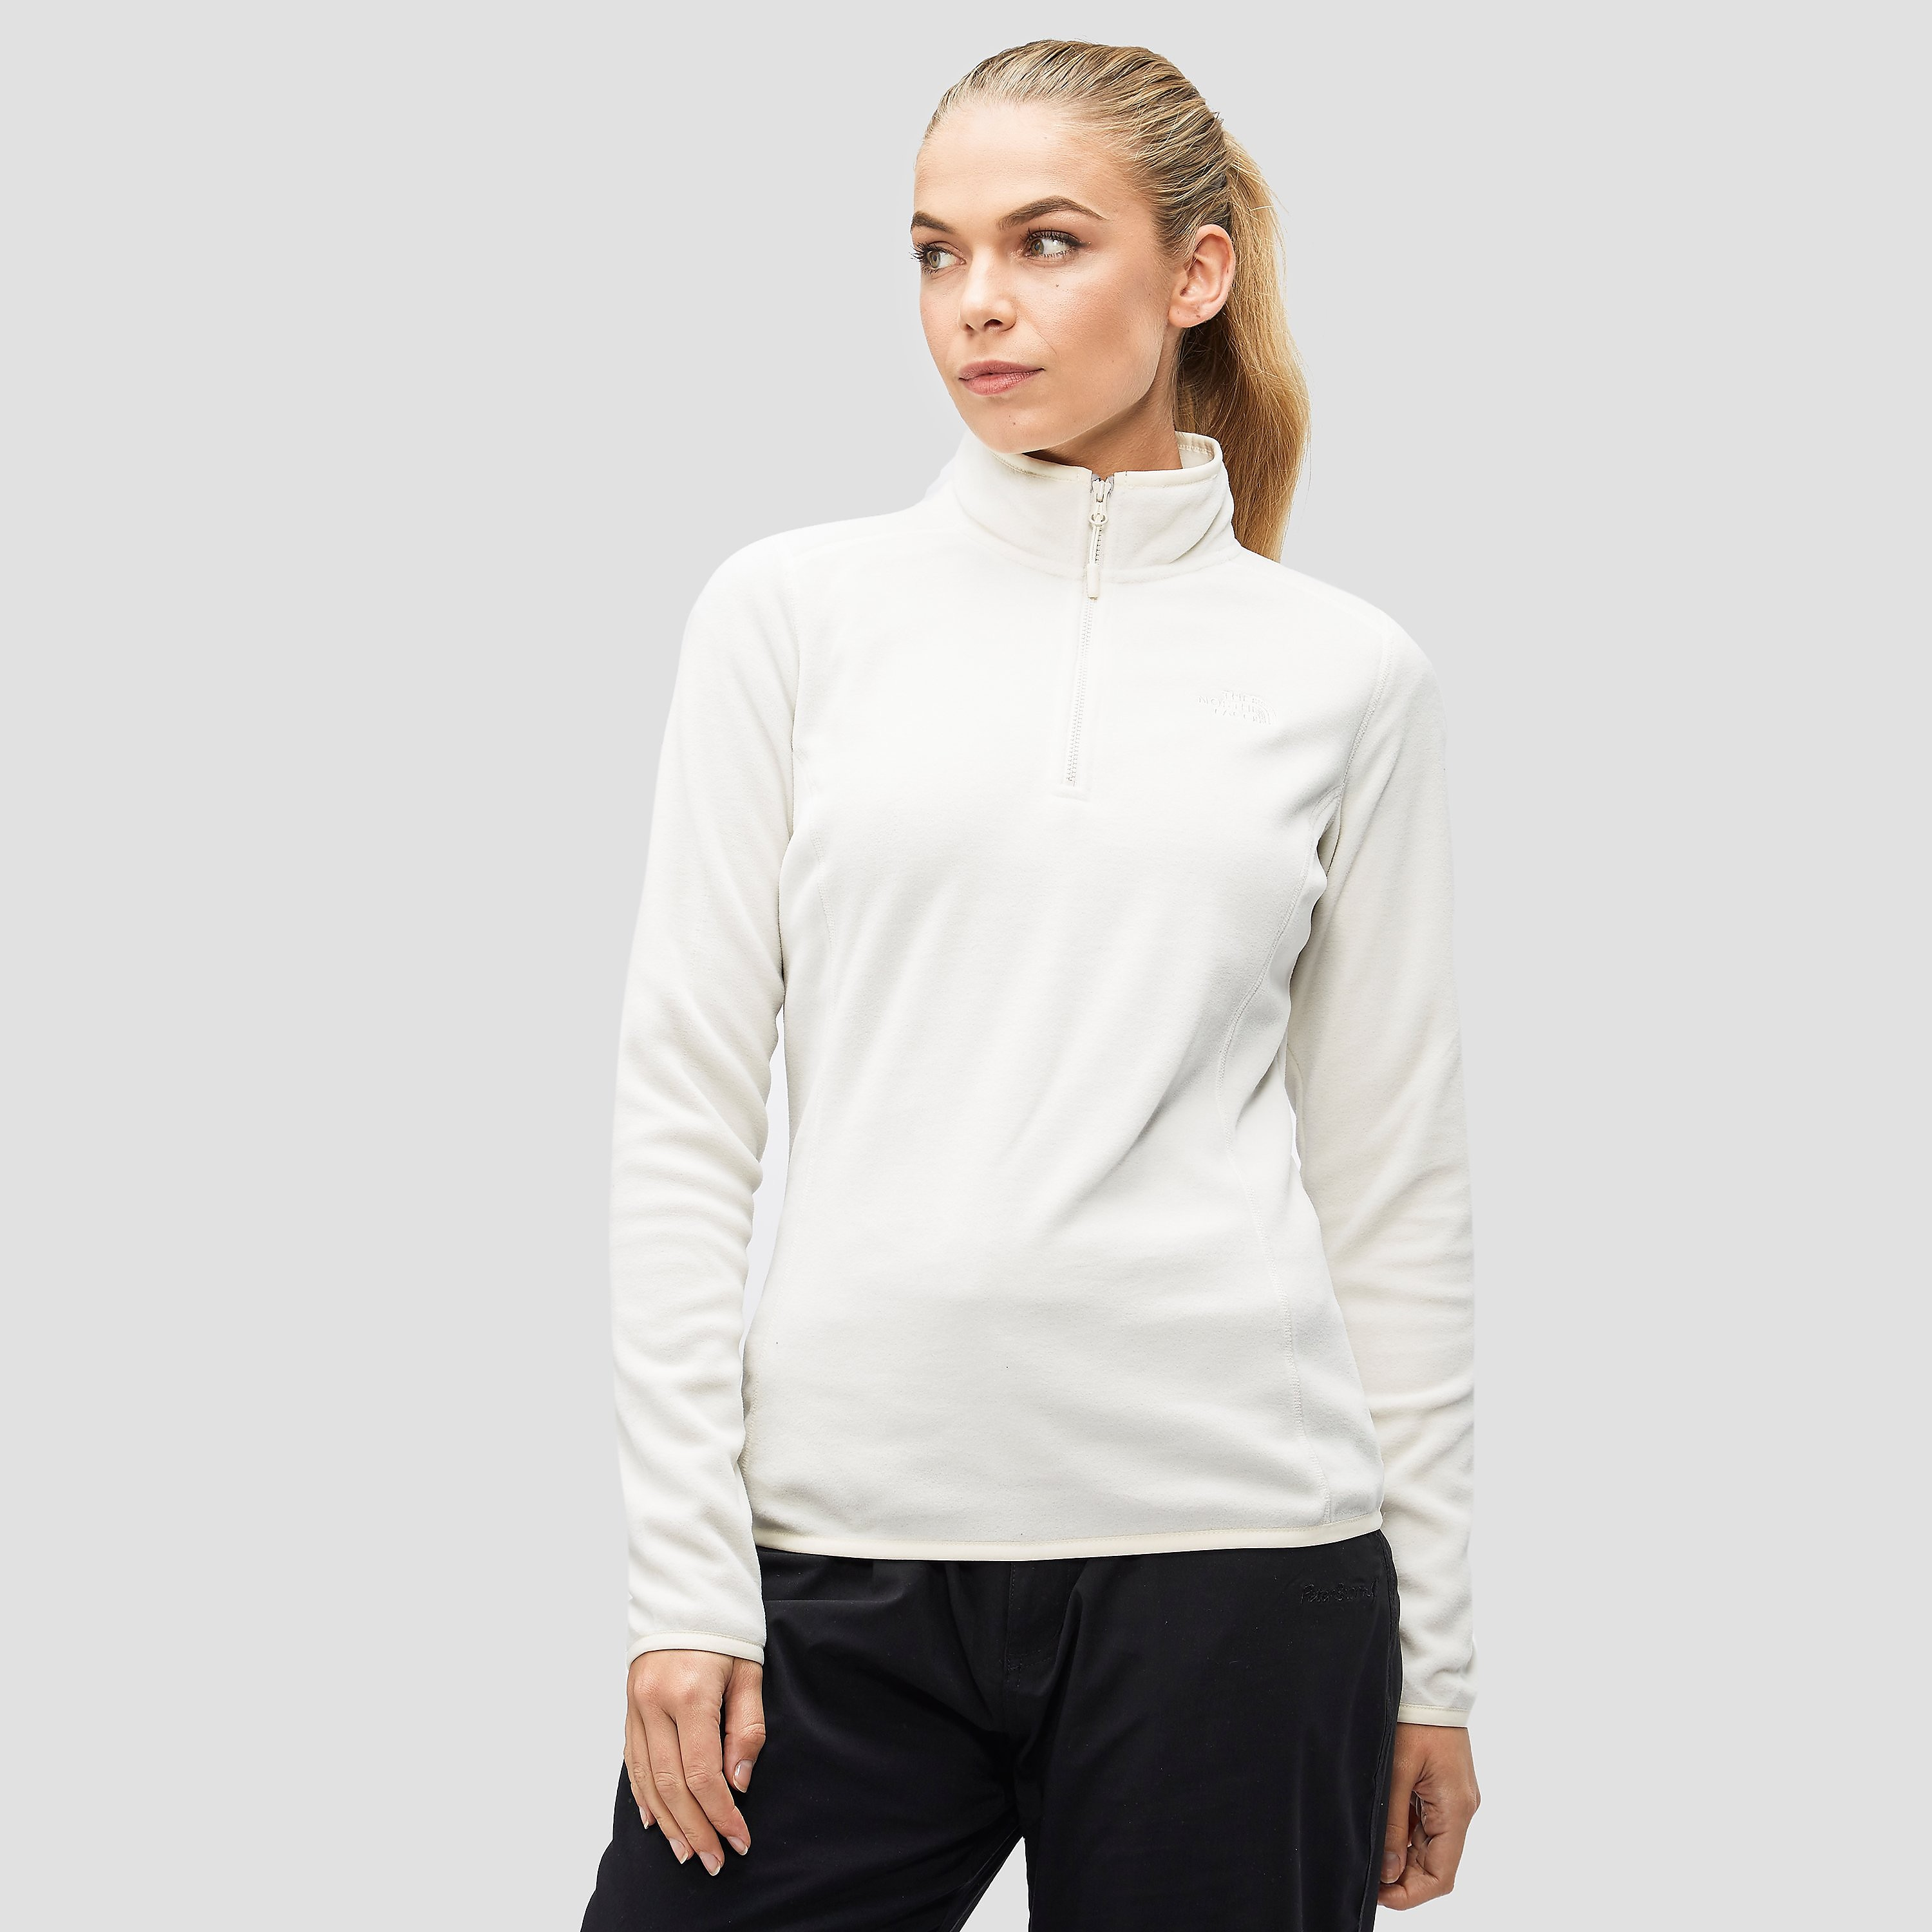 The North Face Women's Glacier 1/4 Zip Fleece